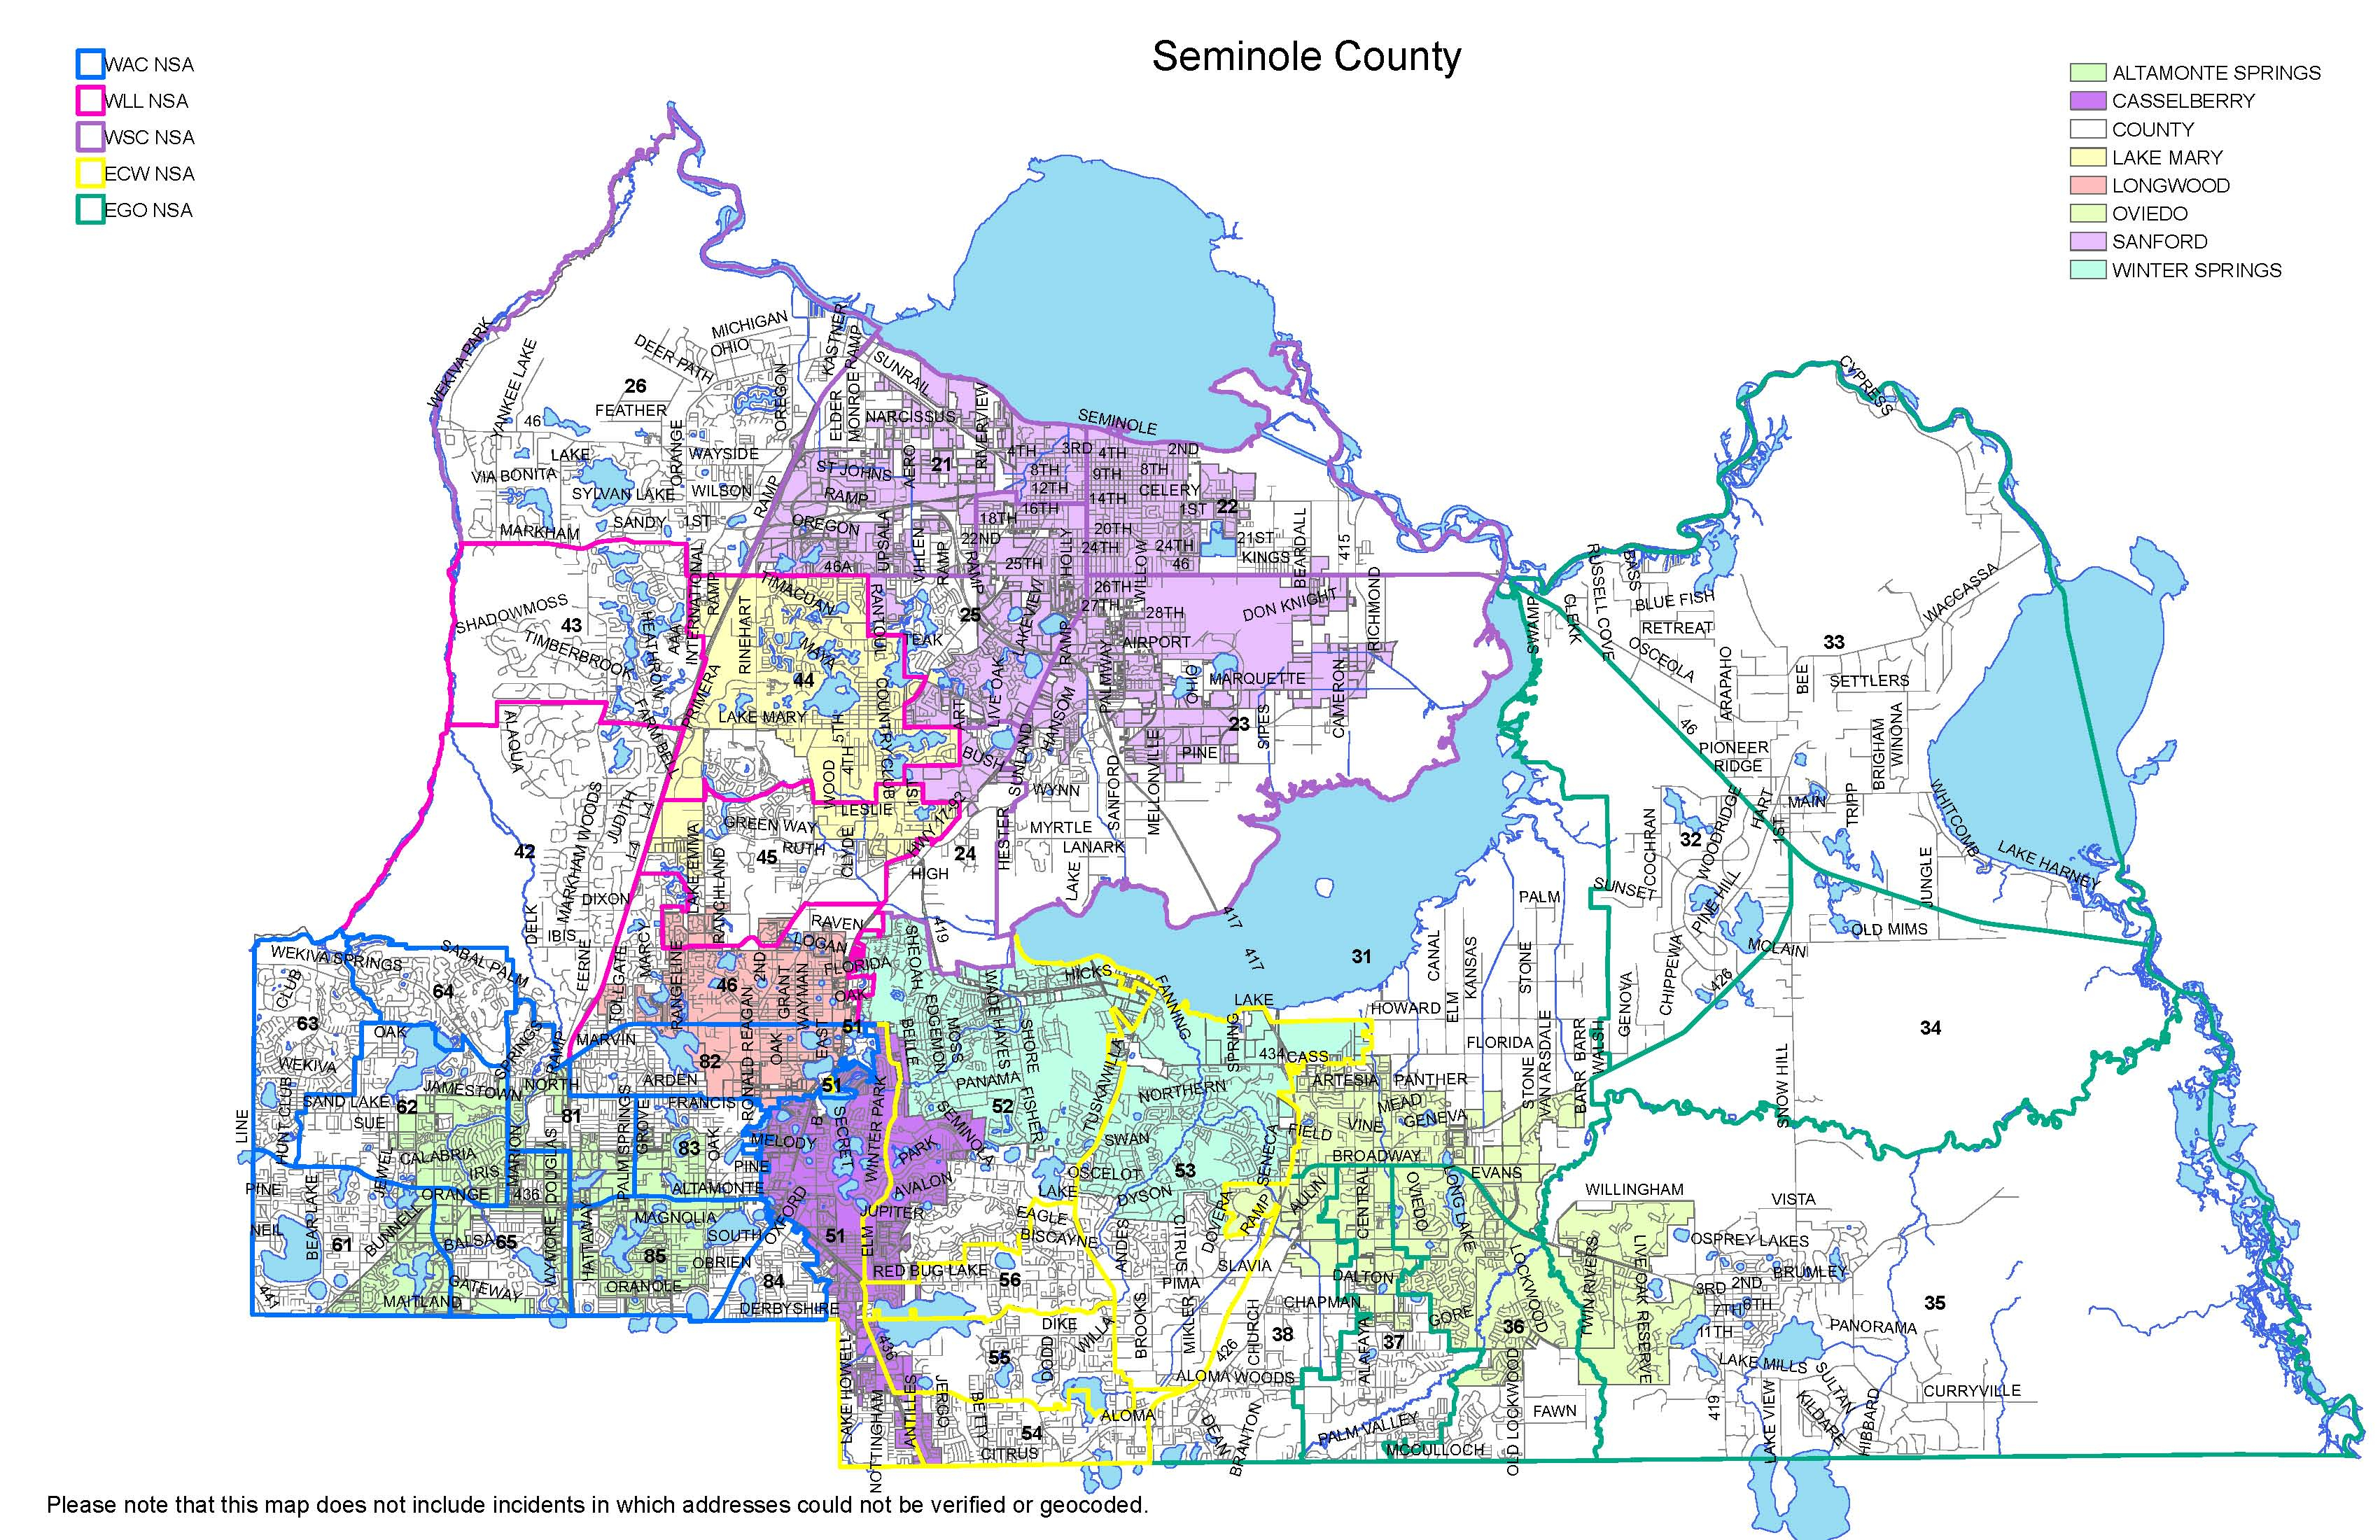 Department - My Neighborhood Policing Division Snp - Map Of Seminole County Florida